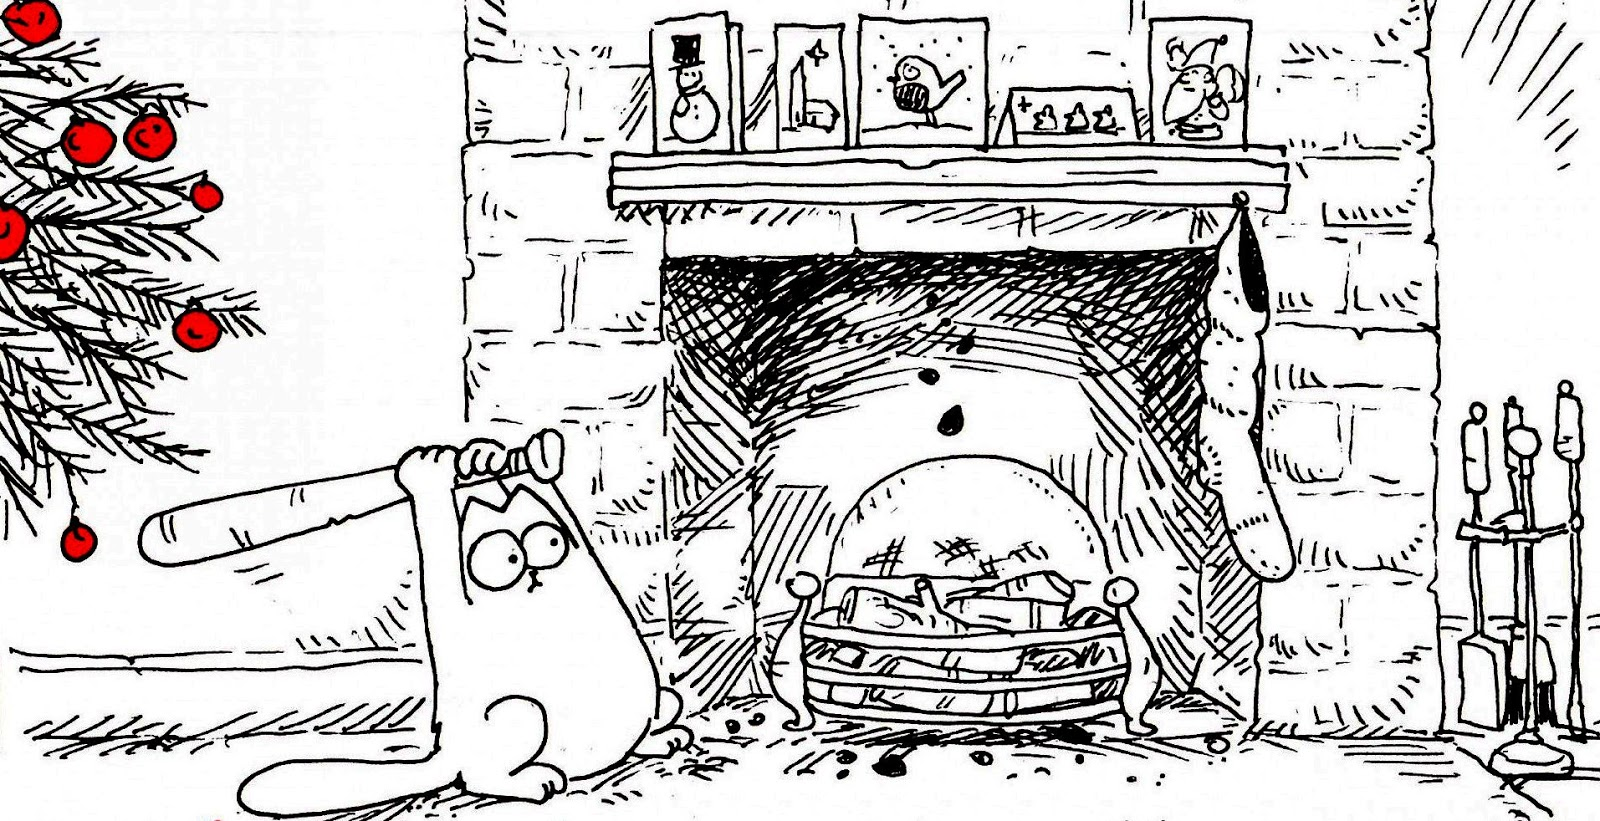 Philosophy of Science Portal: Simon's Cat and the Christmas tree